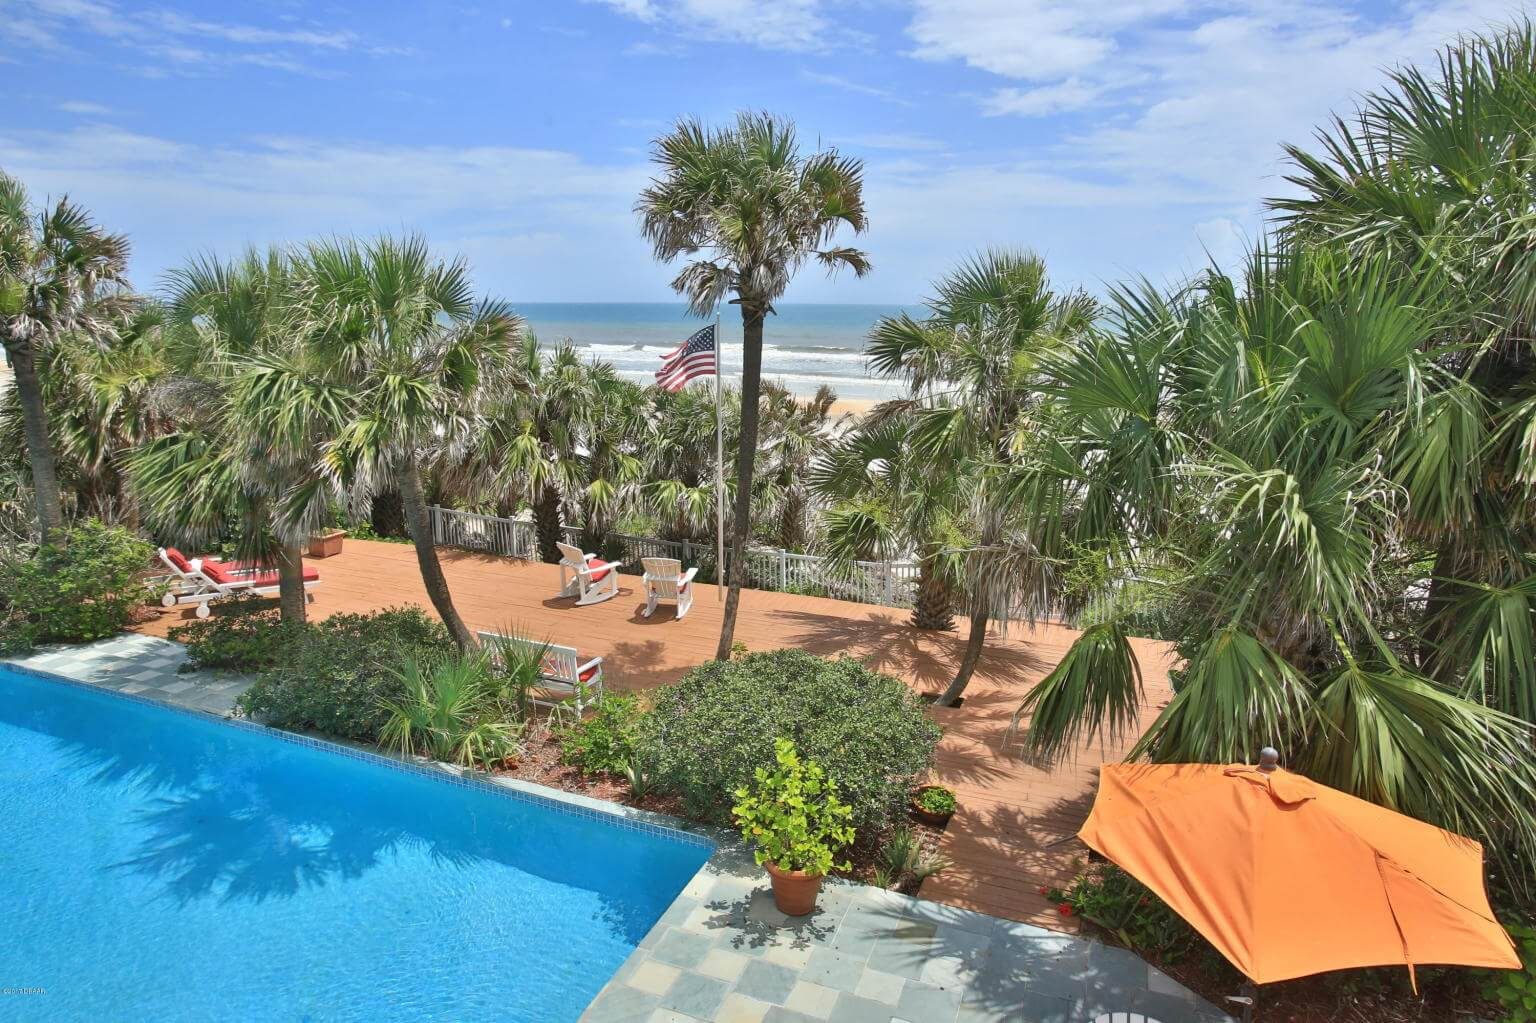 10 most expensive homes sold in the daytona beach area for Landscaping rocks daytona beach